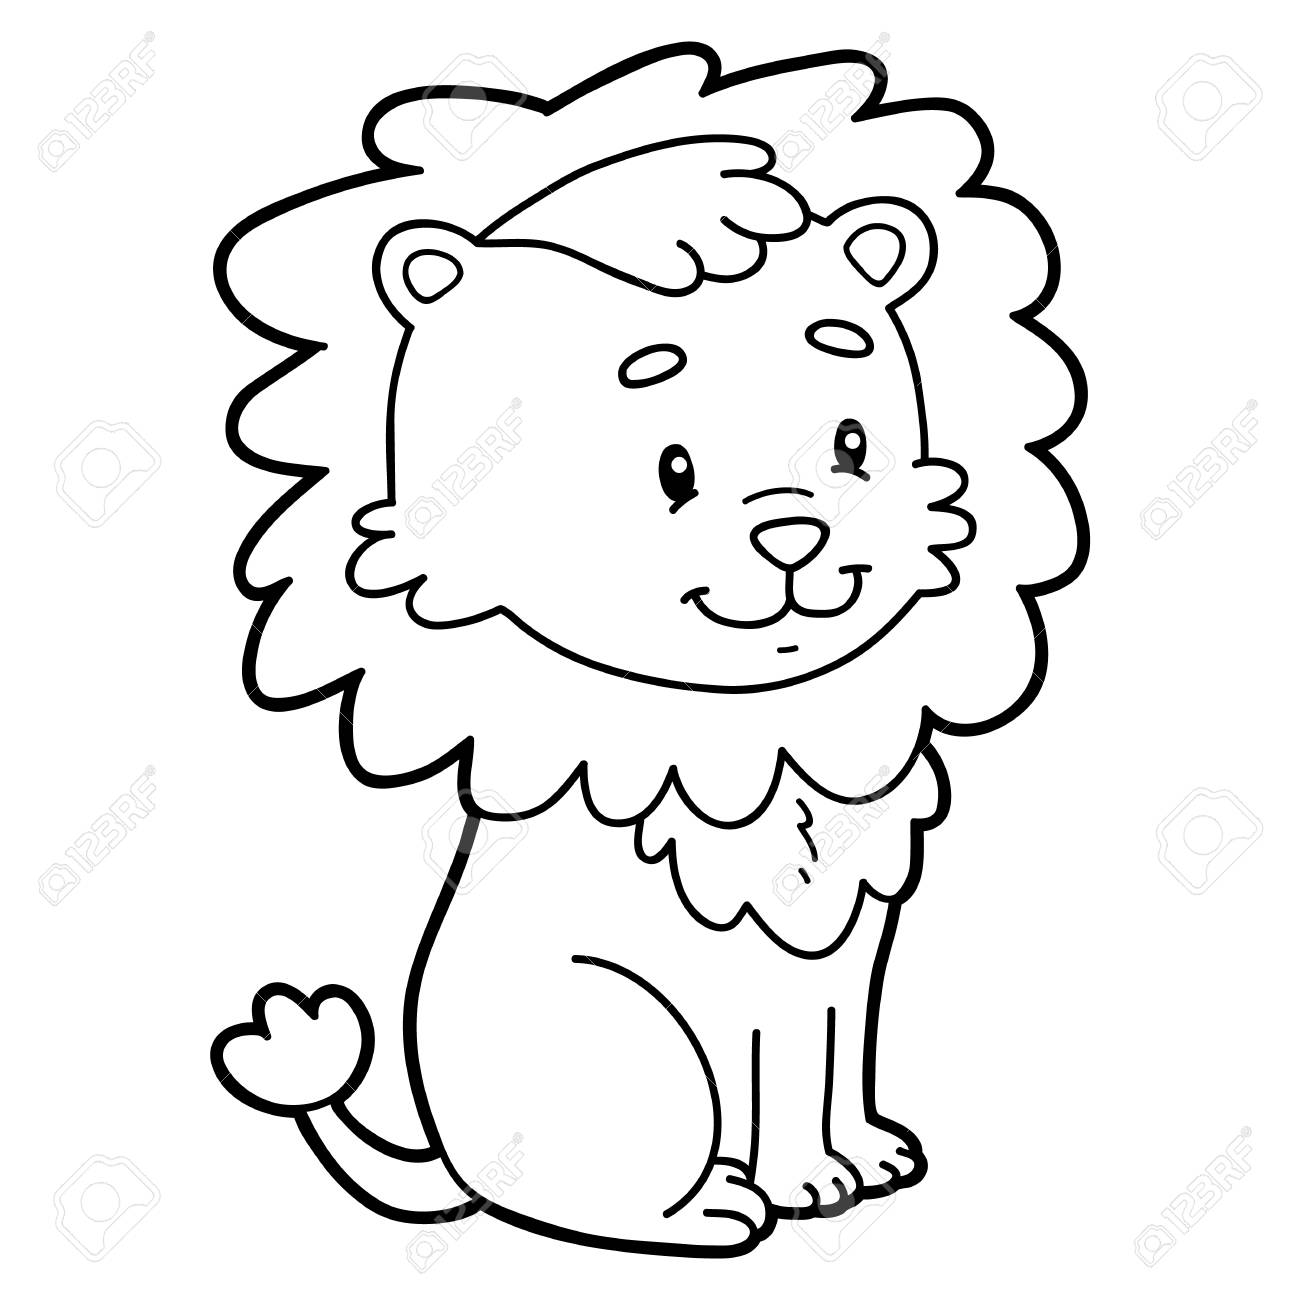 Colouring Pictures Of Cartoon Characters   Coloring Pages   1300x1300